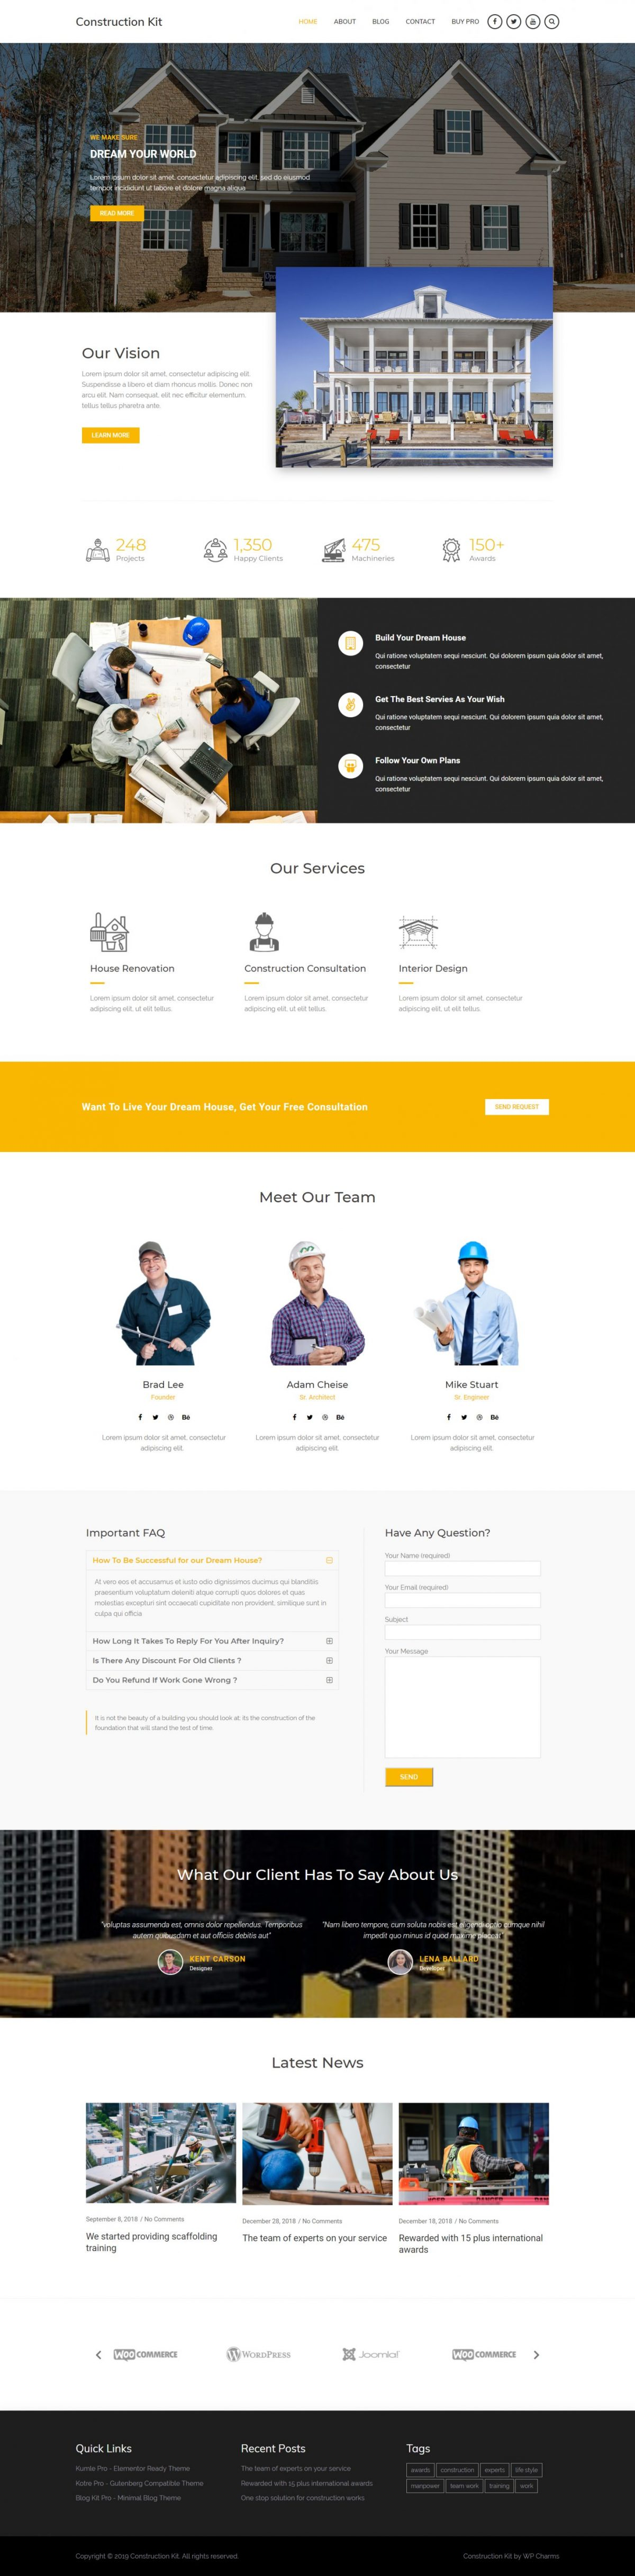 Free WordPress Construction Theme - Demo 3